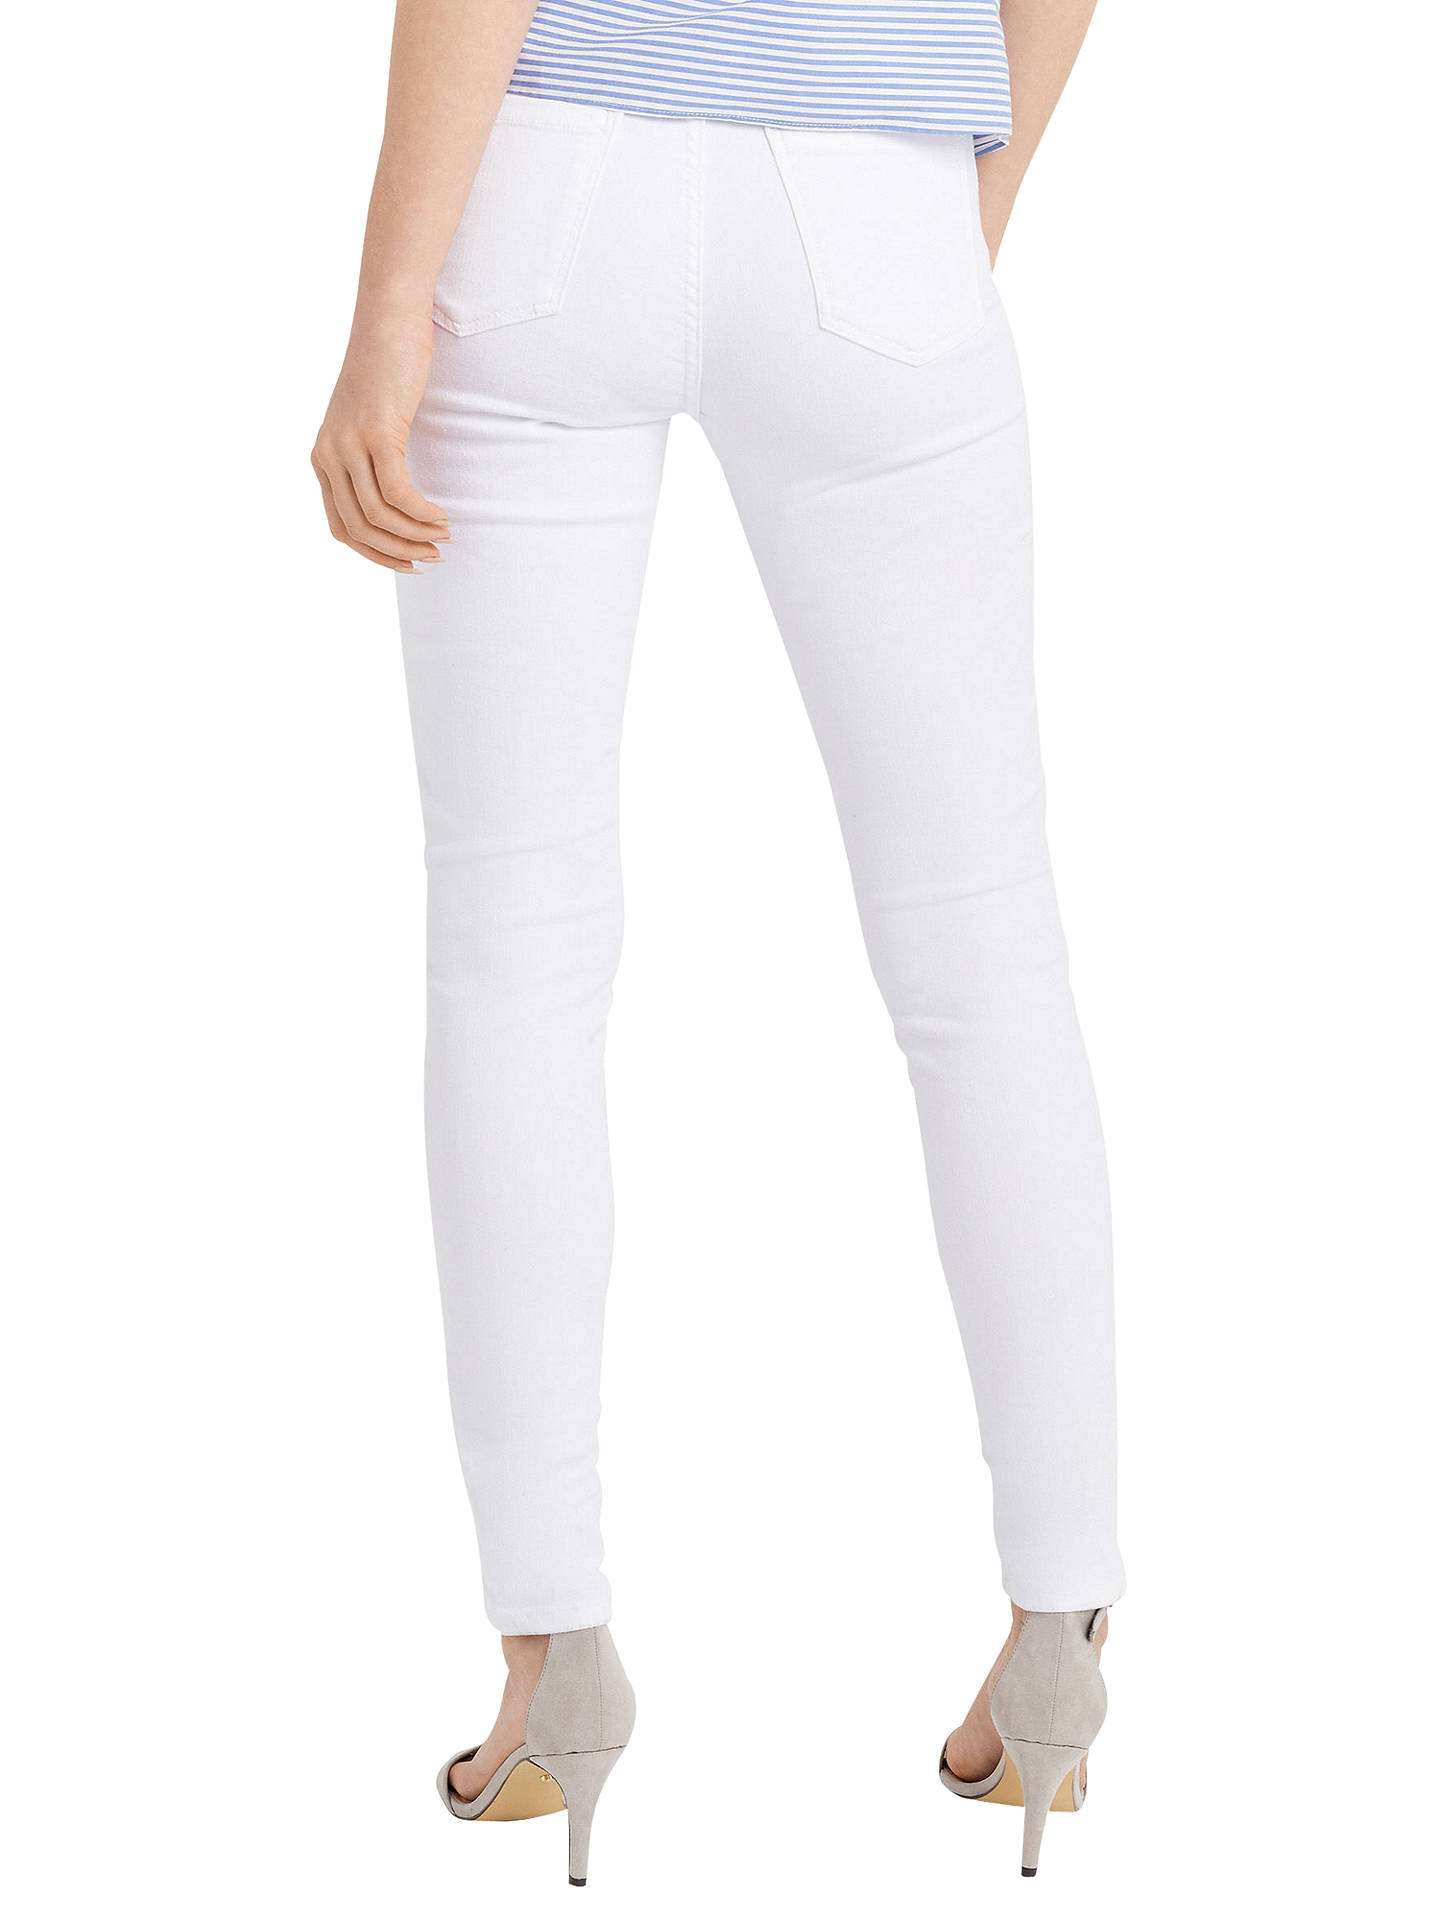 BuyOasis Lily Stiletto Skinny Jeans, White, 8 Online at johnlewis.com